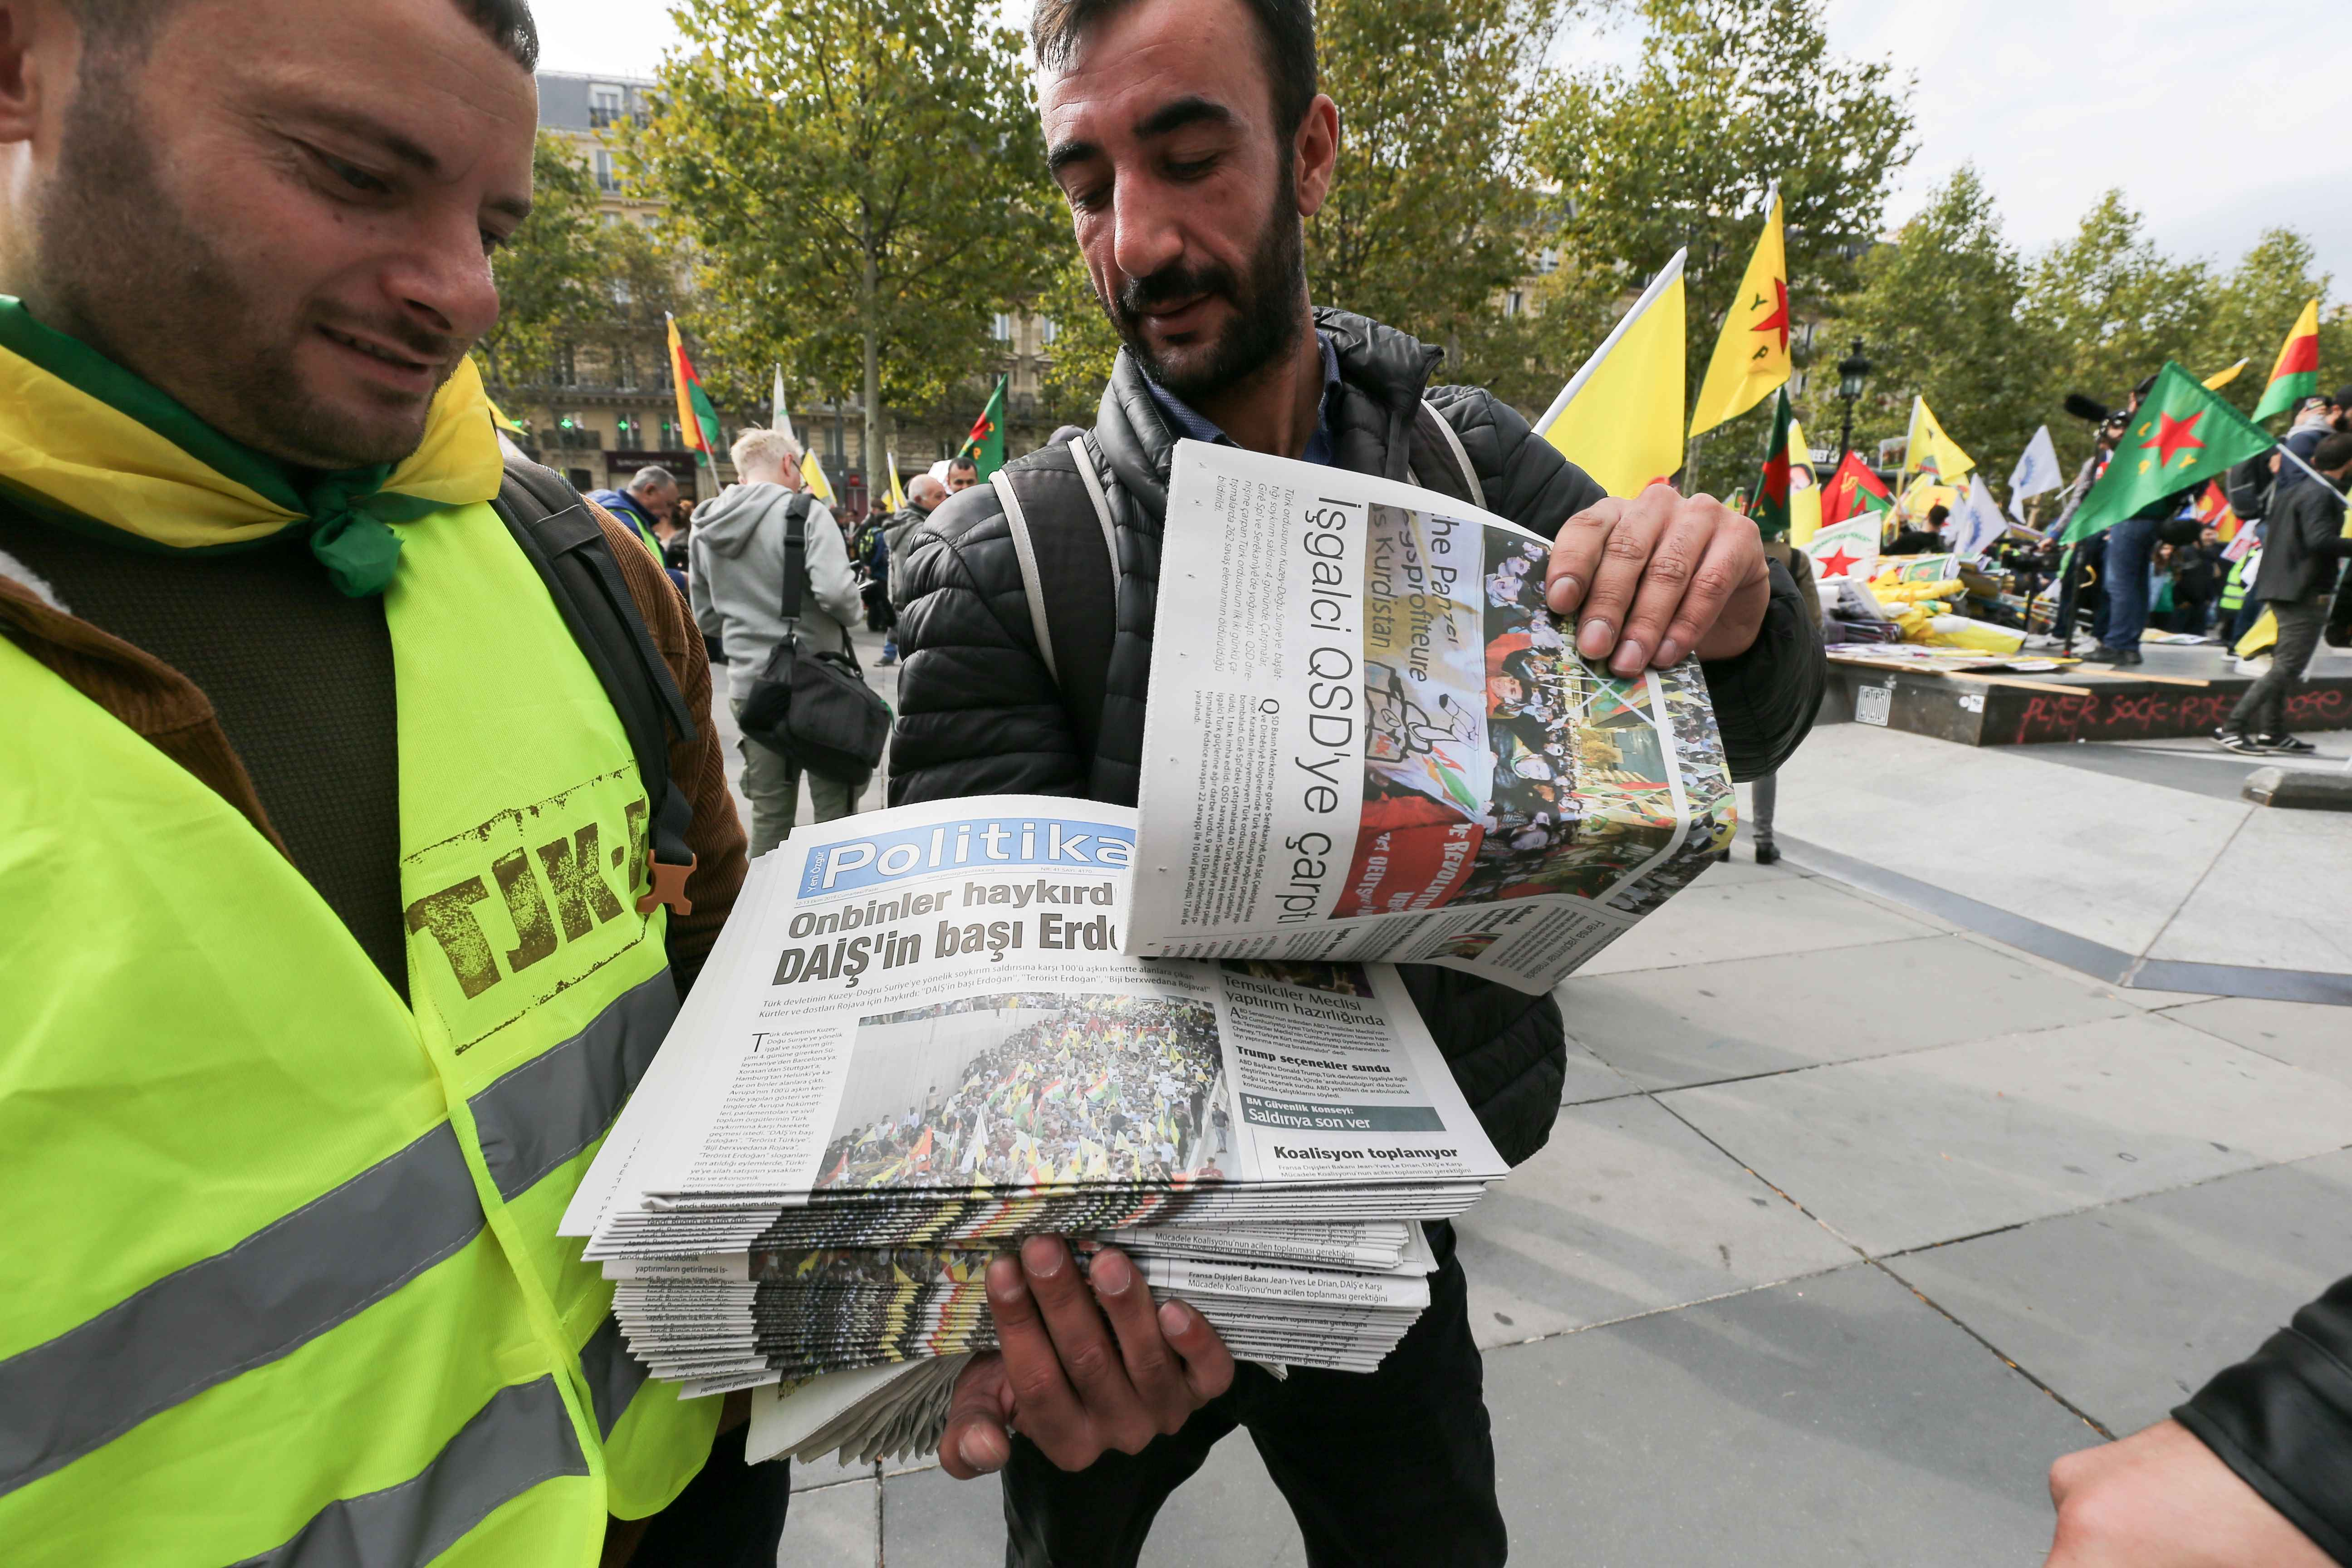 A man is selling newspapers about the Kurds in Syria during a demonstration at the place de la Republique in Paris, on October 12, 2019, in support of the Kurds and against the Turkish offensive in Syria. On October 9, 2019, the Turkish military began its